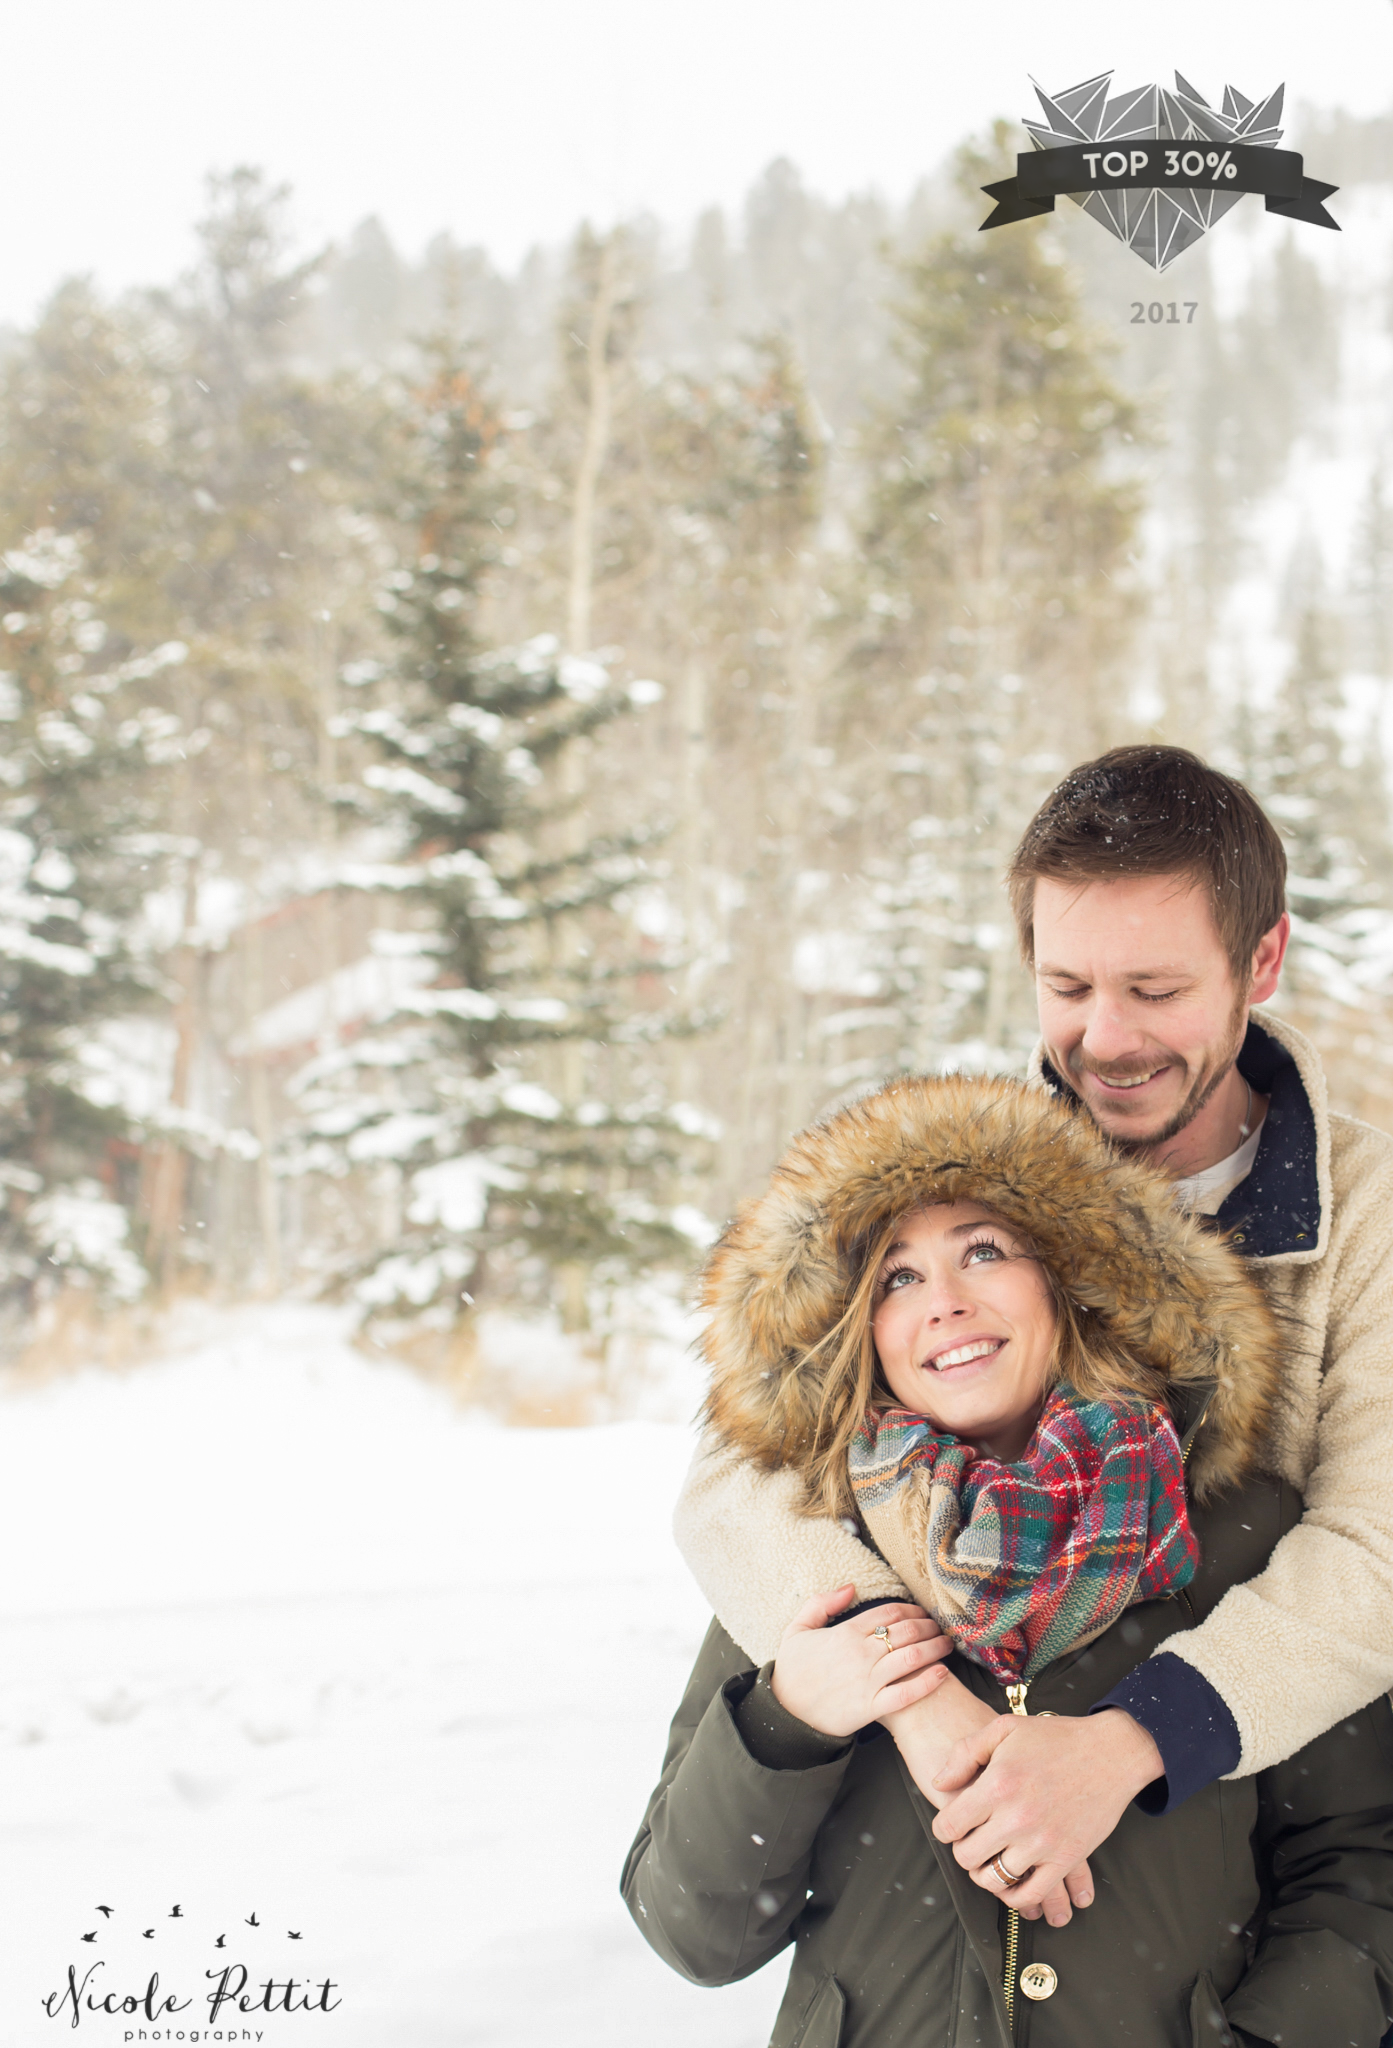 Category- Engagement & Couples     Round 6/12    Placed 9,294 out of 32,282      Engagement Session- Breckenridge, Colorado